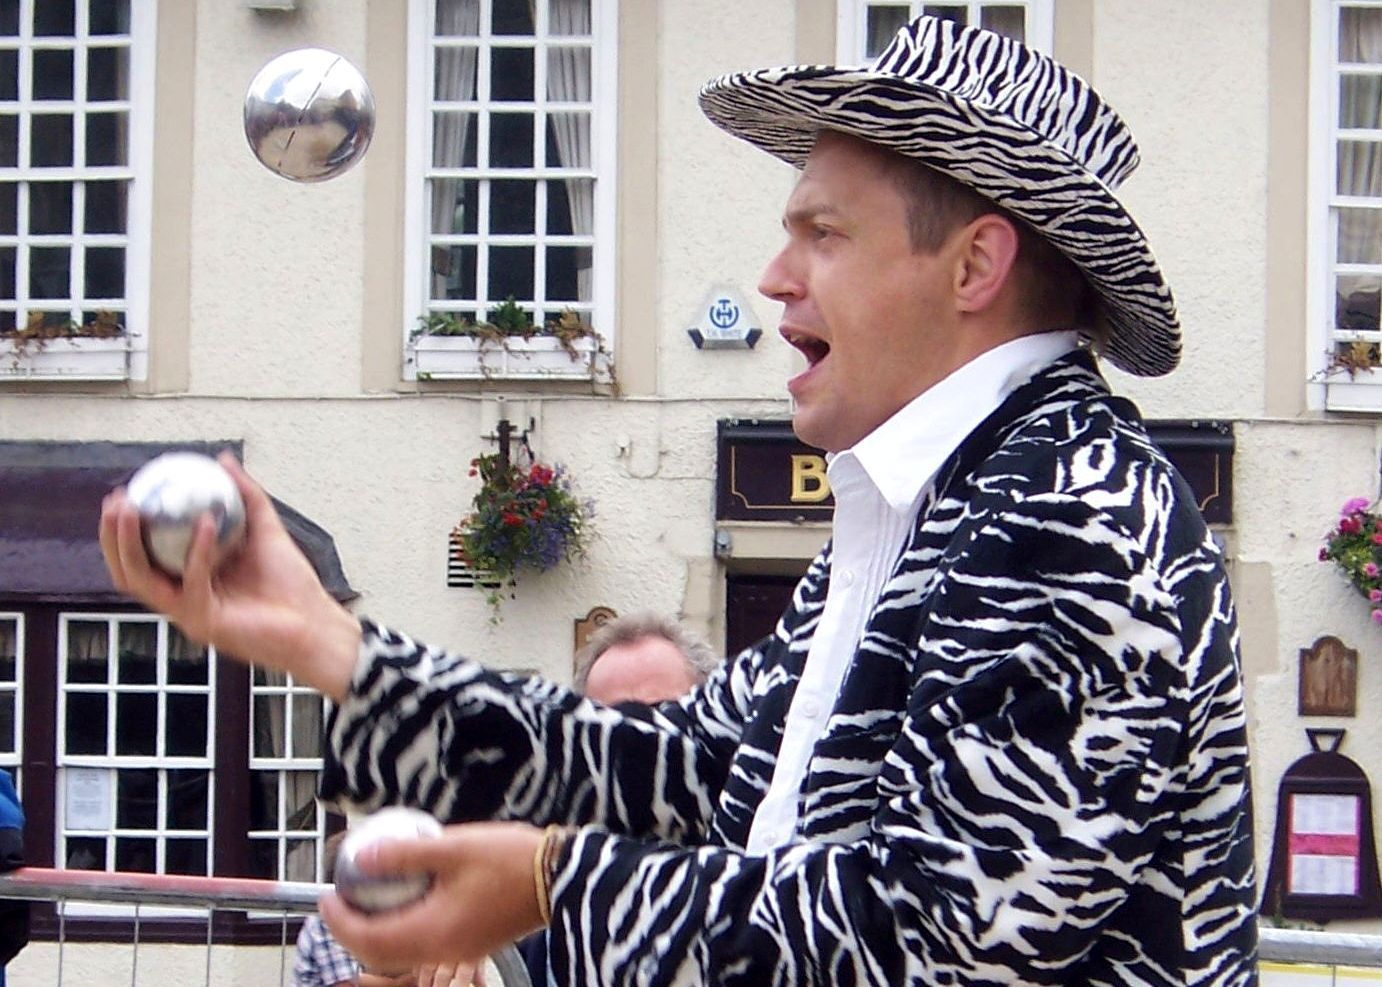 Thomas Trilby Juggler from Gloucestershire